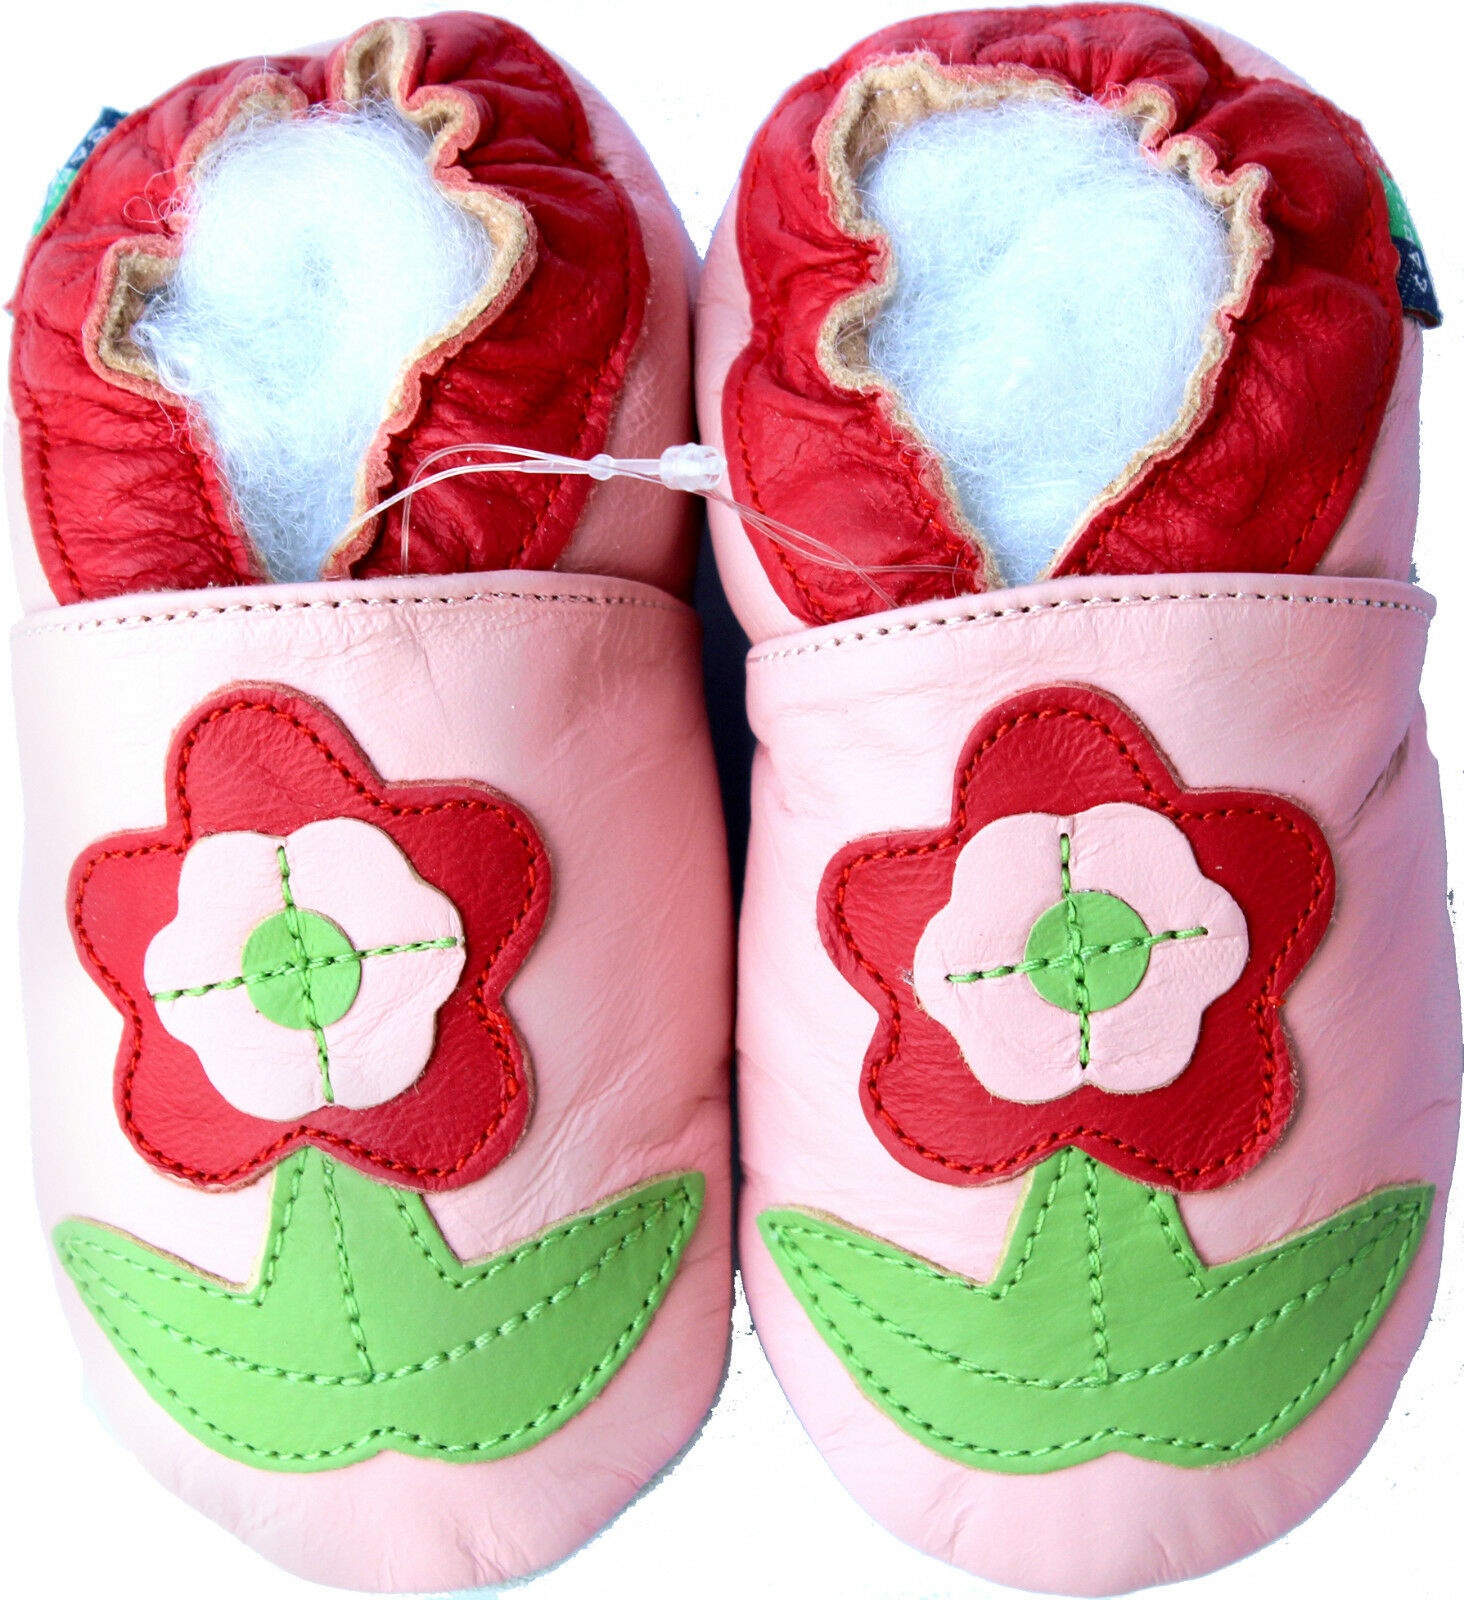 Soft Sole Leather Baby Shoes Flower Pink 18 24m S